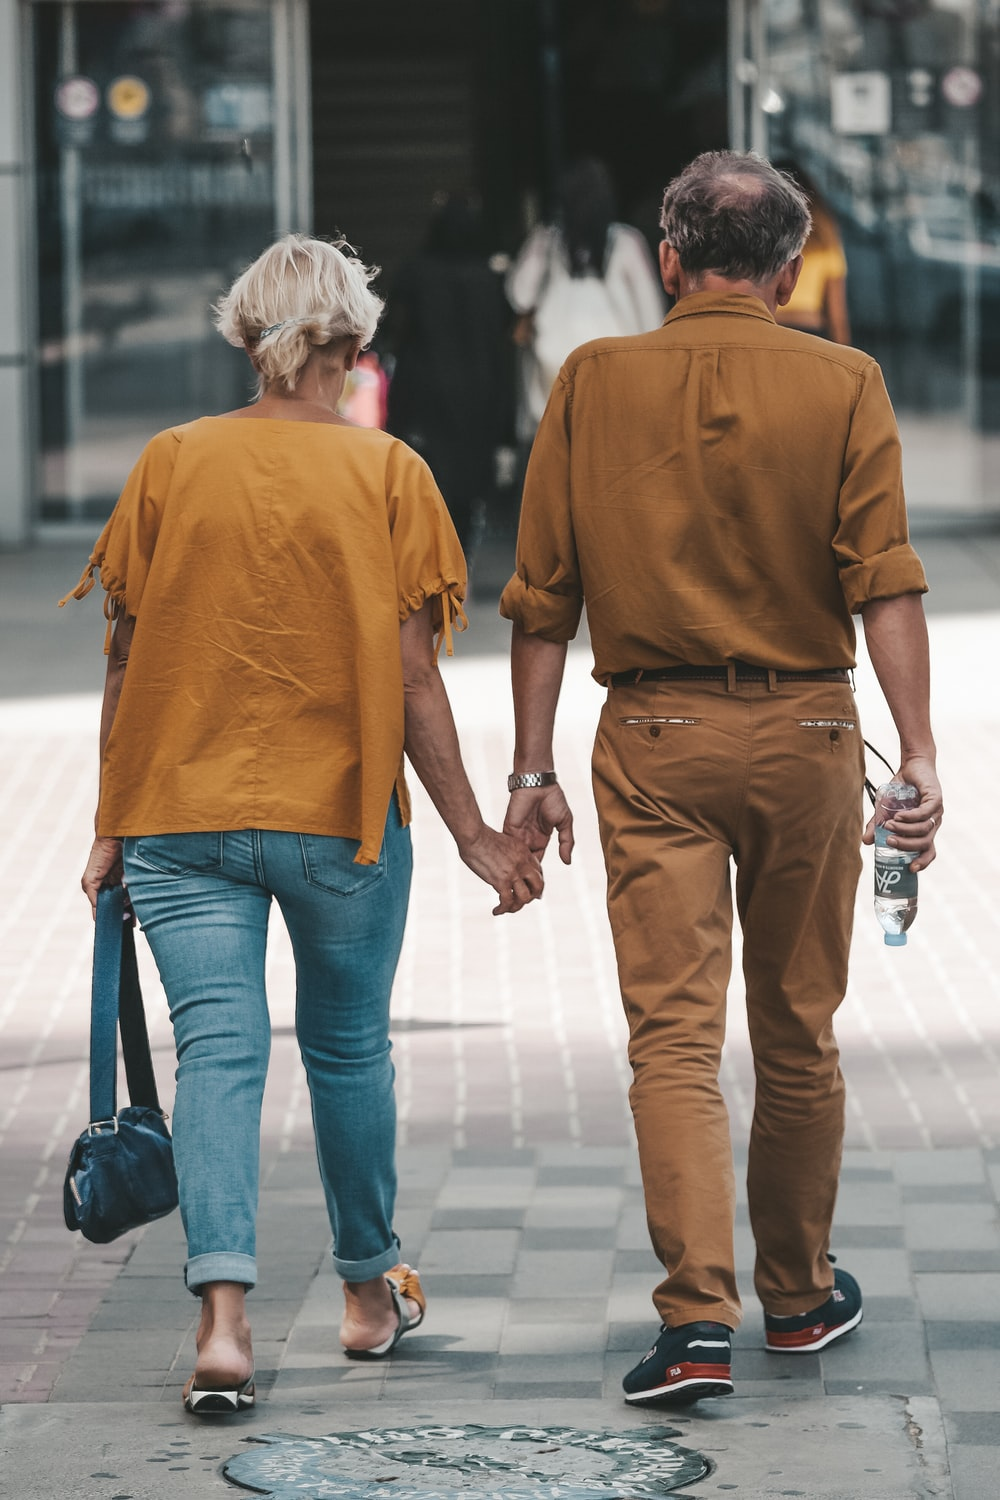 couple holding hands during daytime